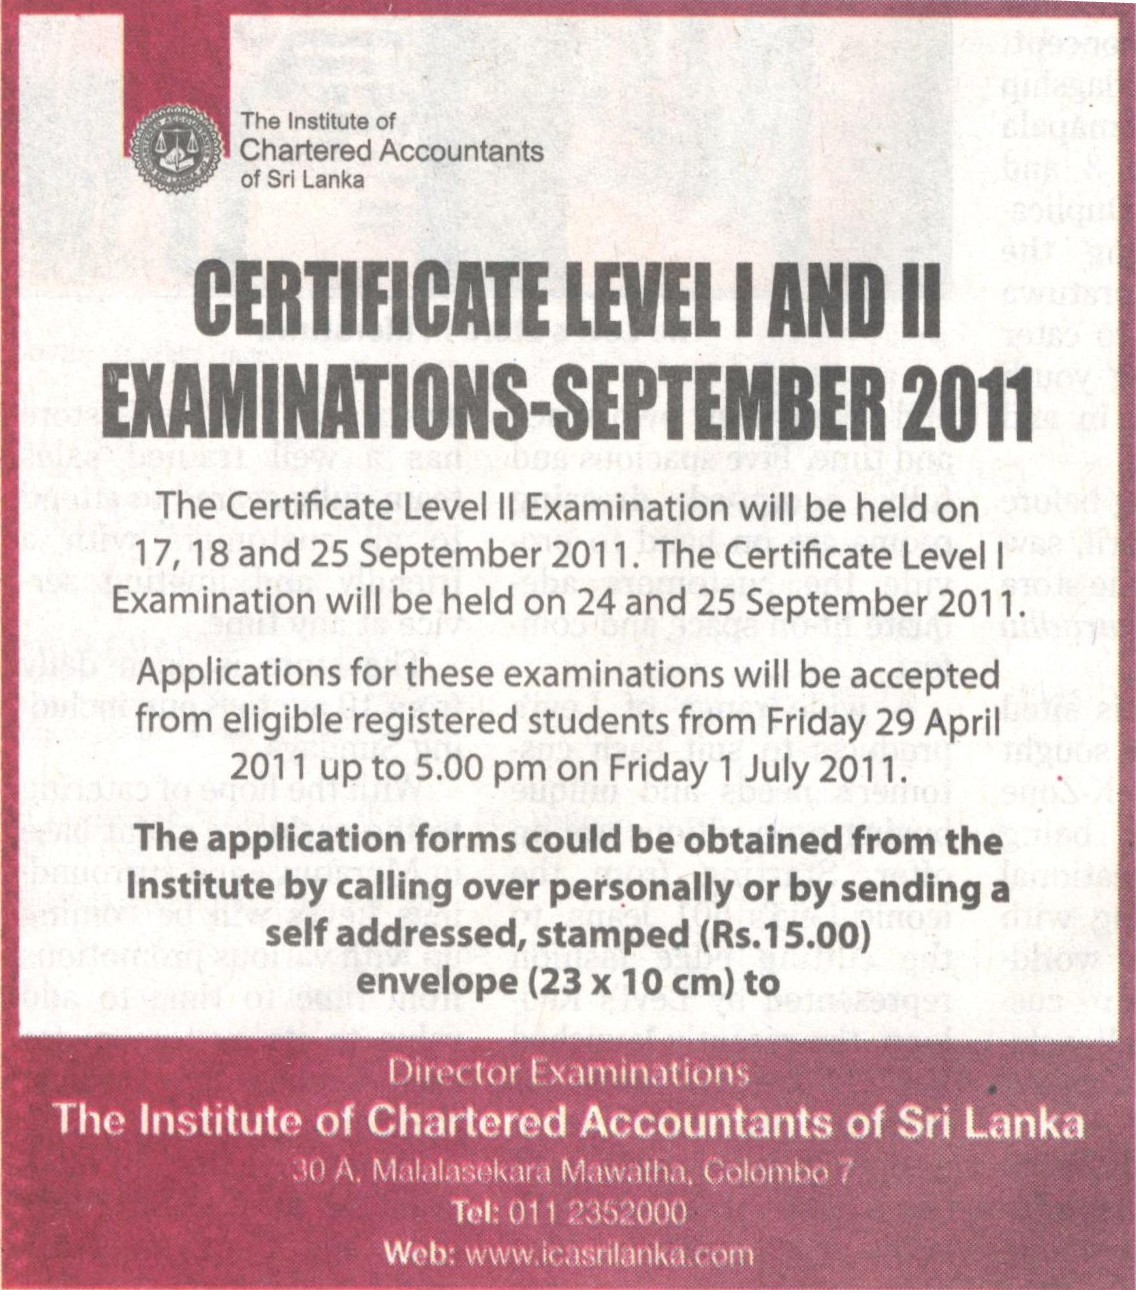 Certificate level i and level ii examination september 2011 chartered accountants certificate level 1 and 2 examinations september 2011 xflitez Images